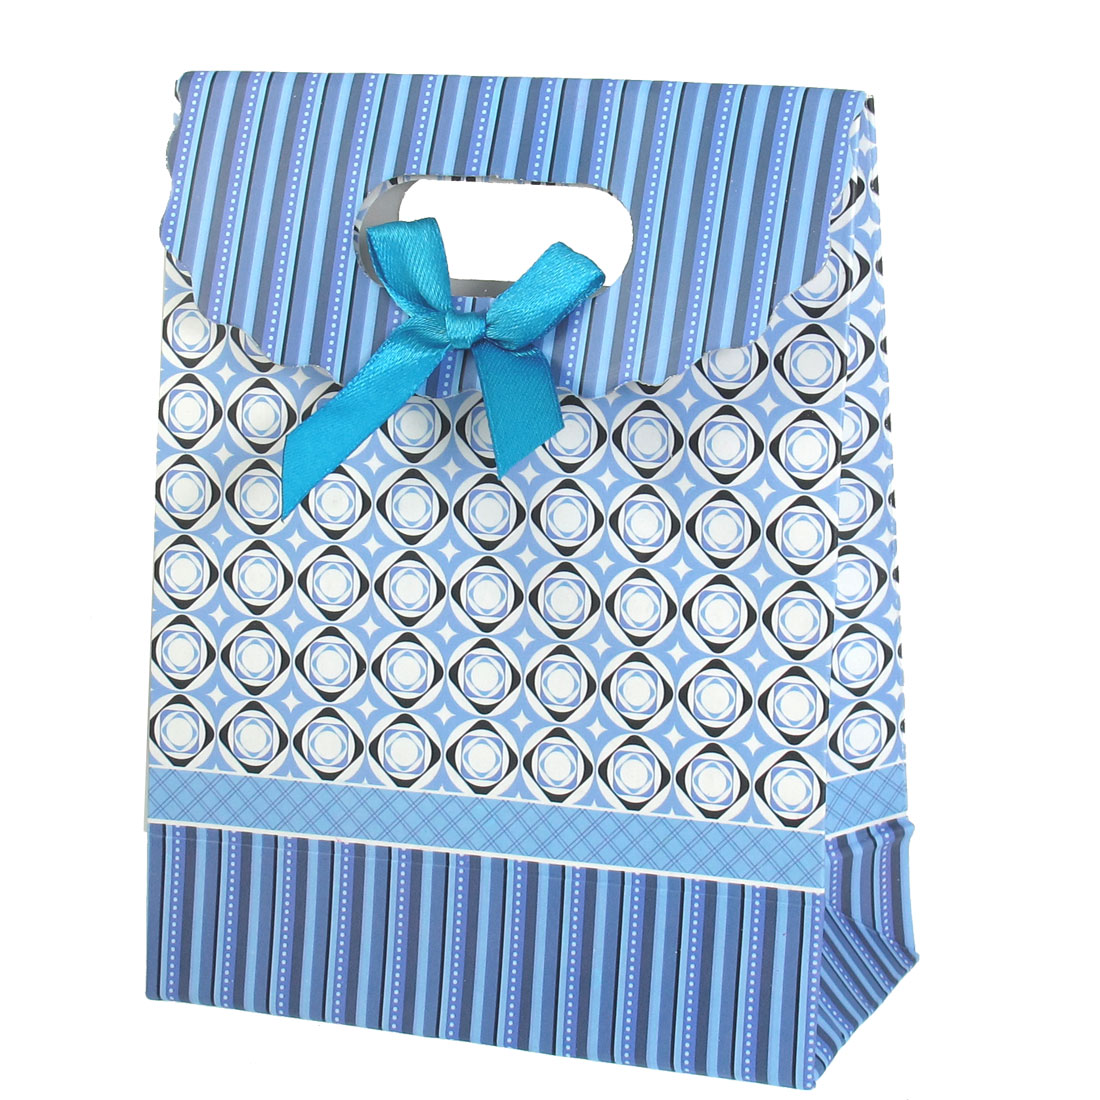 Blue 16.4 x 12.4 x 6cm Bowtie Accent Hook Loop Closure Foldable Paper Gift Bag